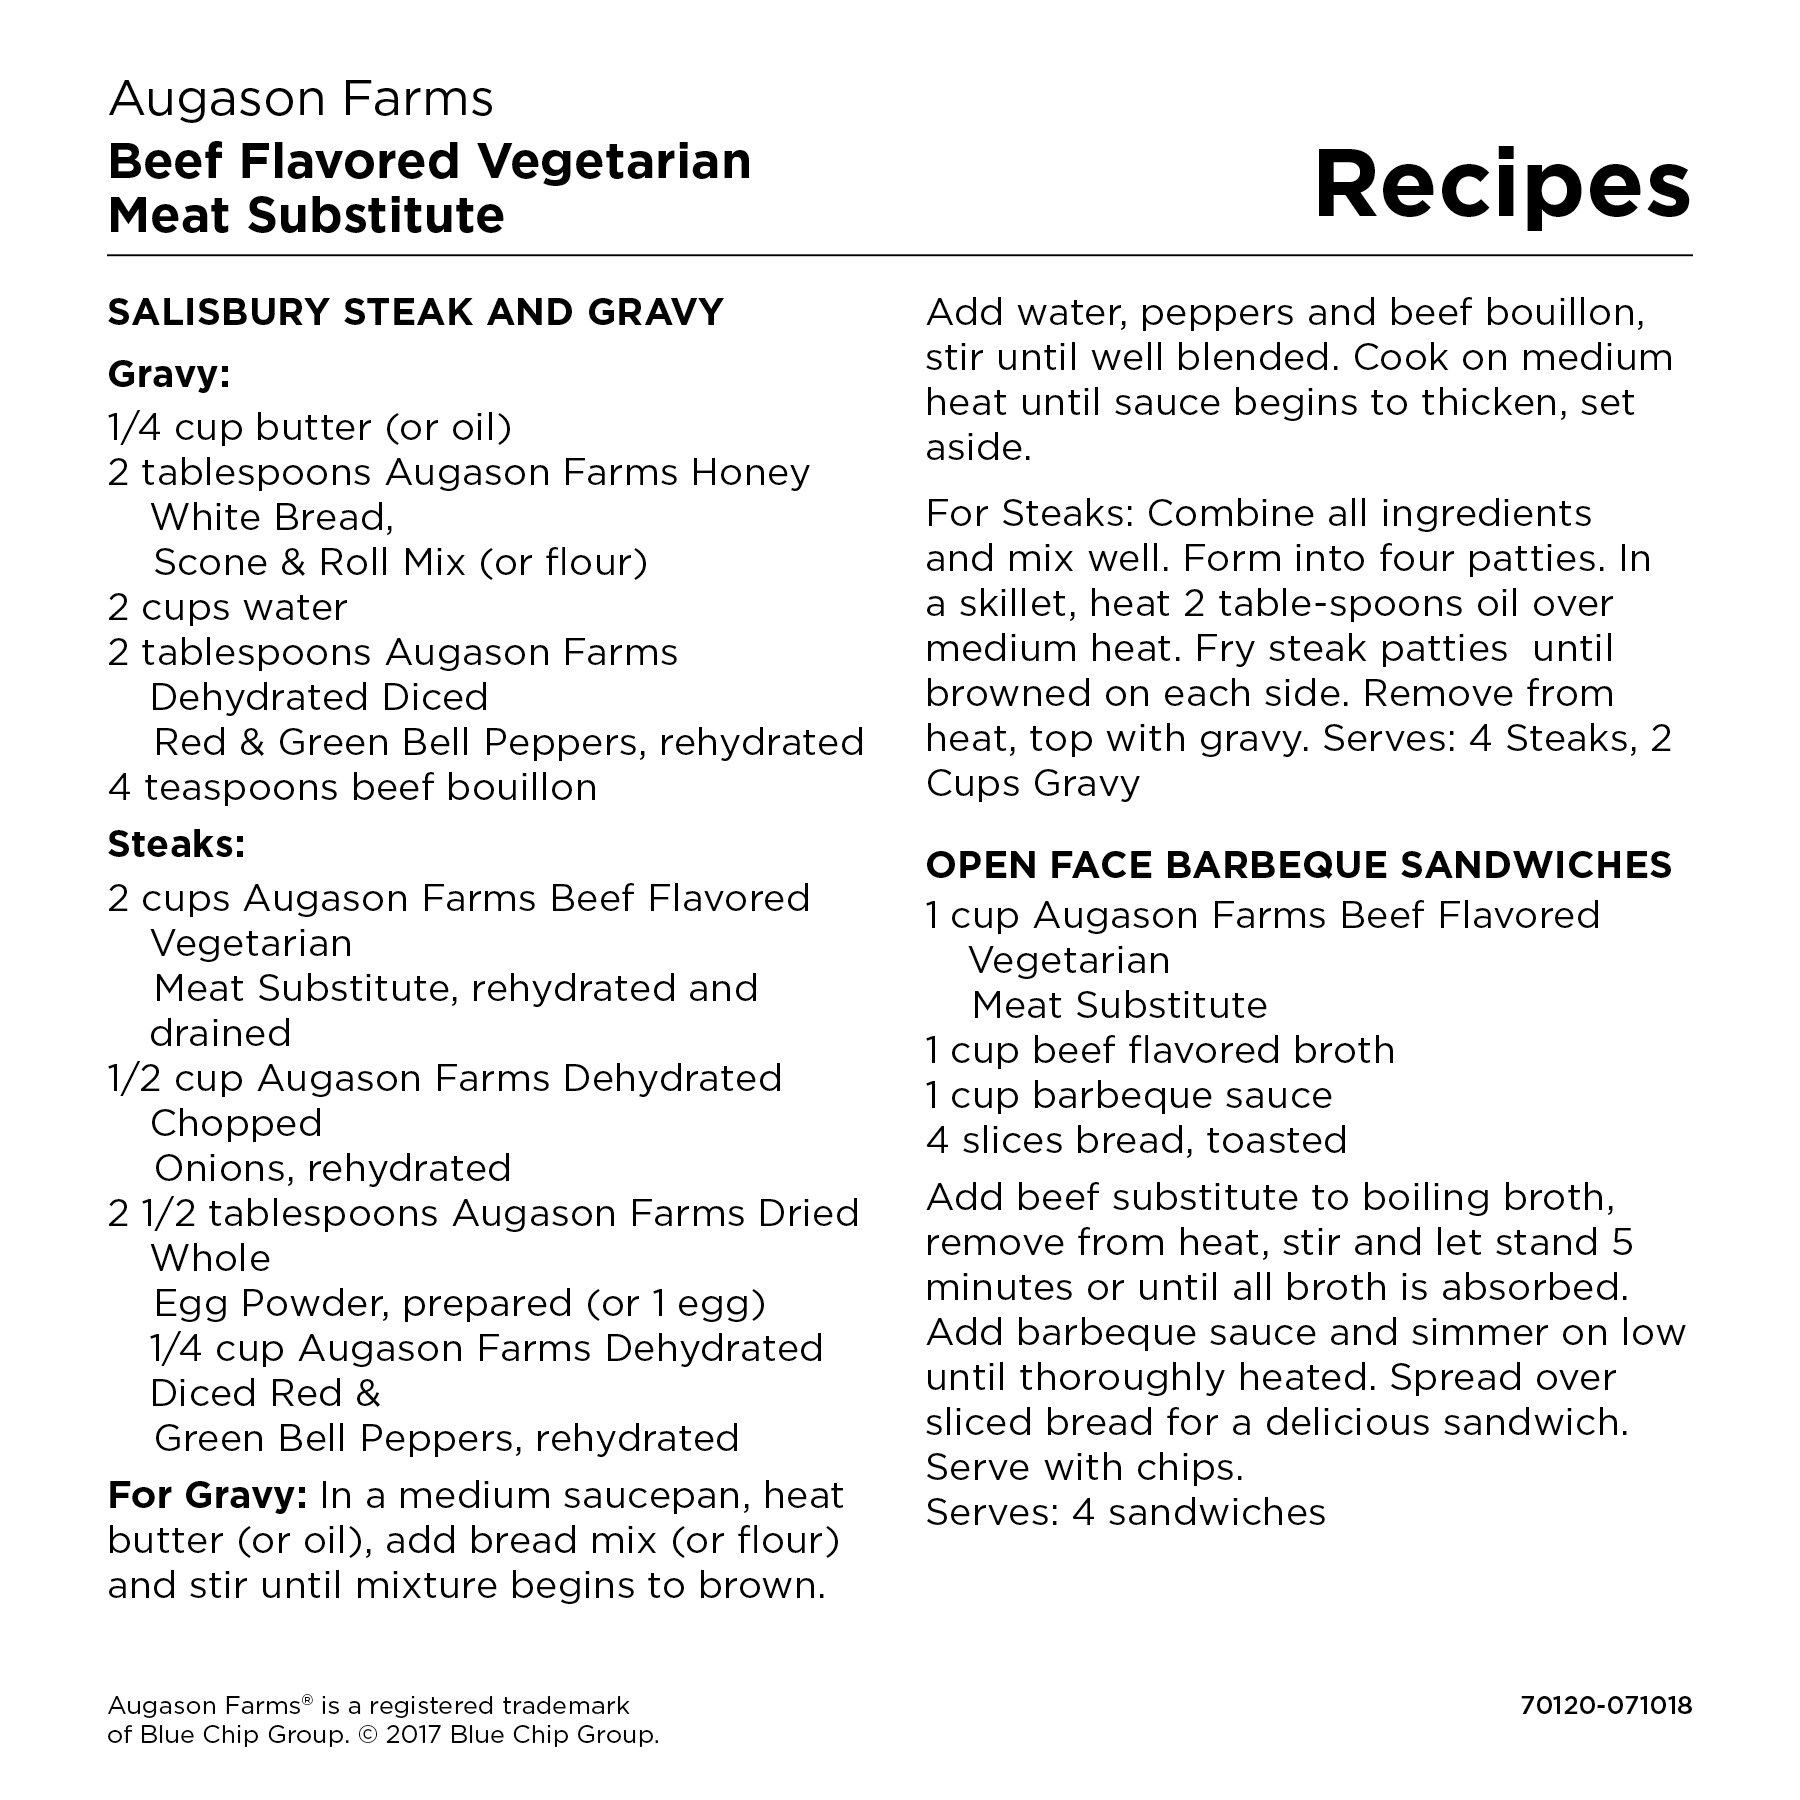 Augason Farms Beef Flavored Vegetarian Meat Substitute 2 lbs 5 oz No. 10 Can by Augason Farms (Image #4)